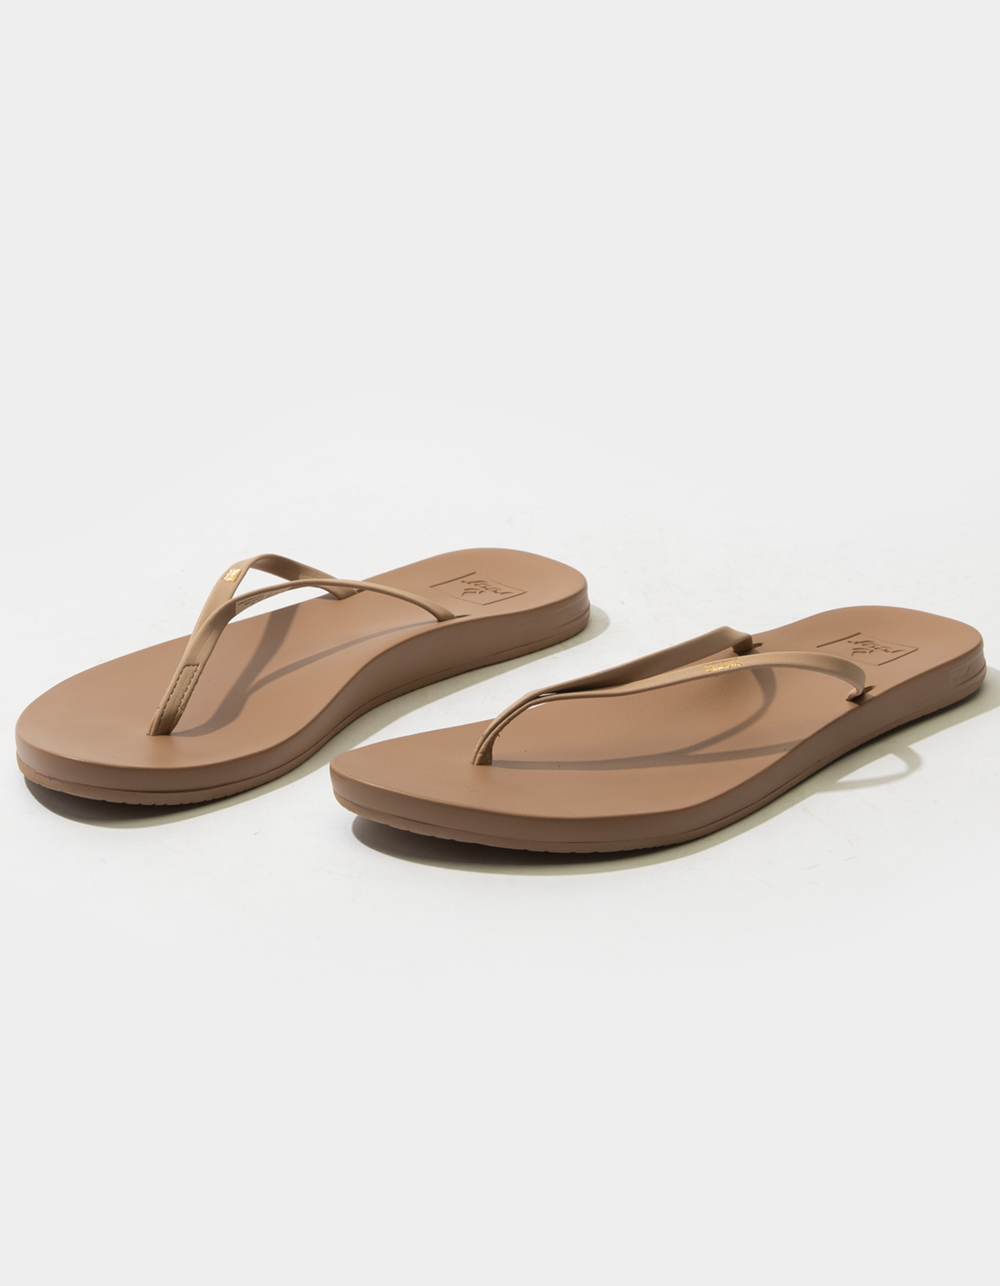 REEF Cushion Bounce Slim Nude Sandals